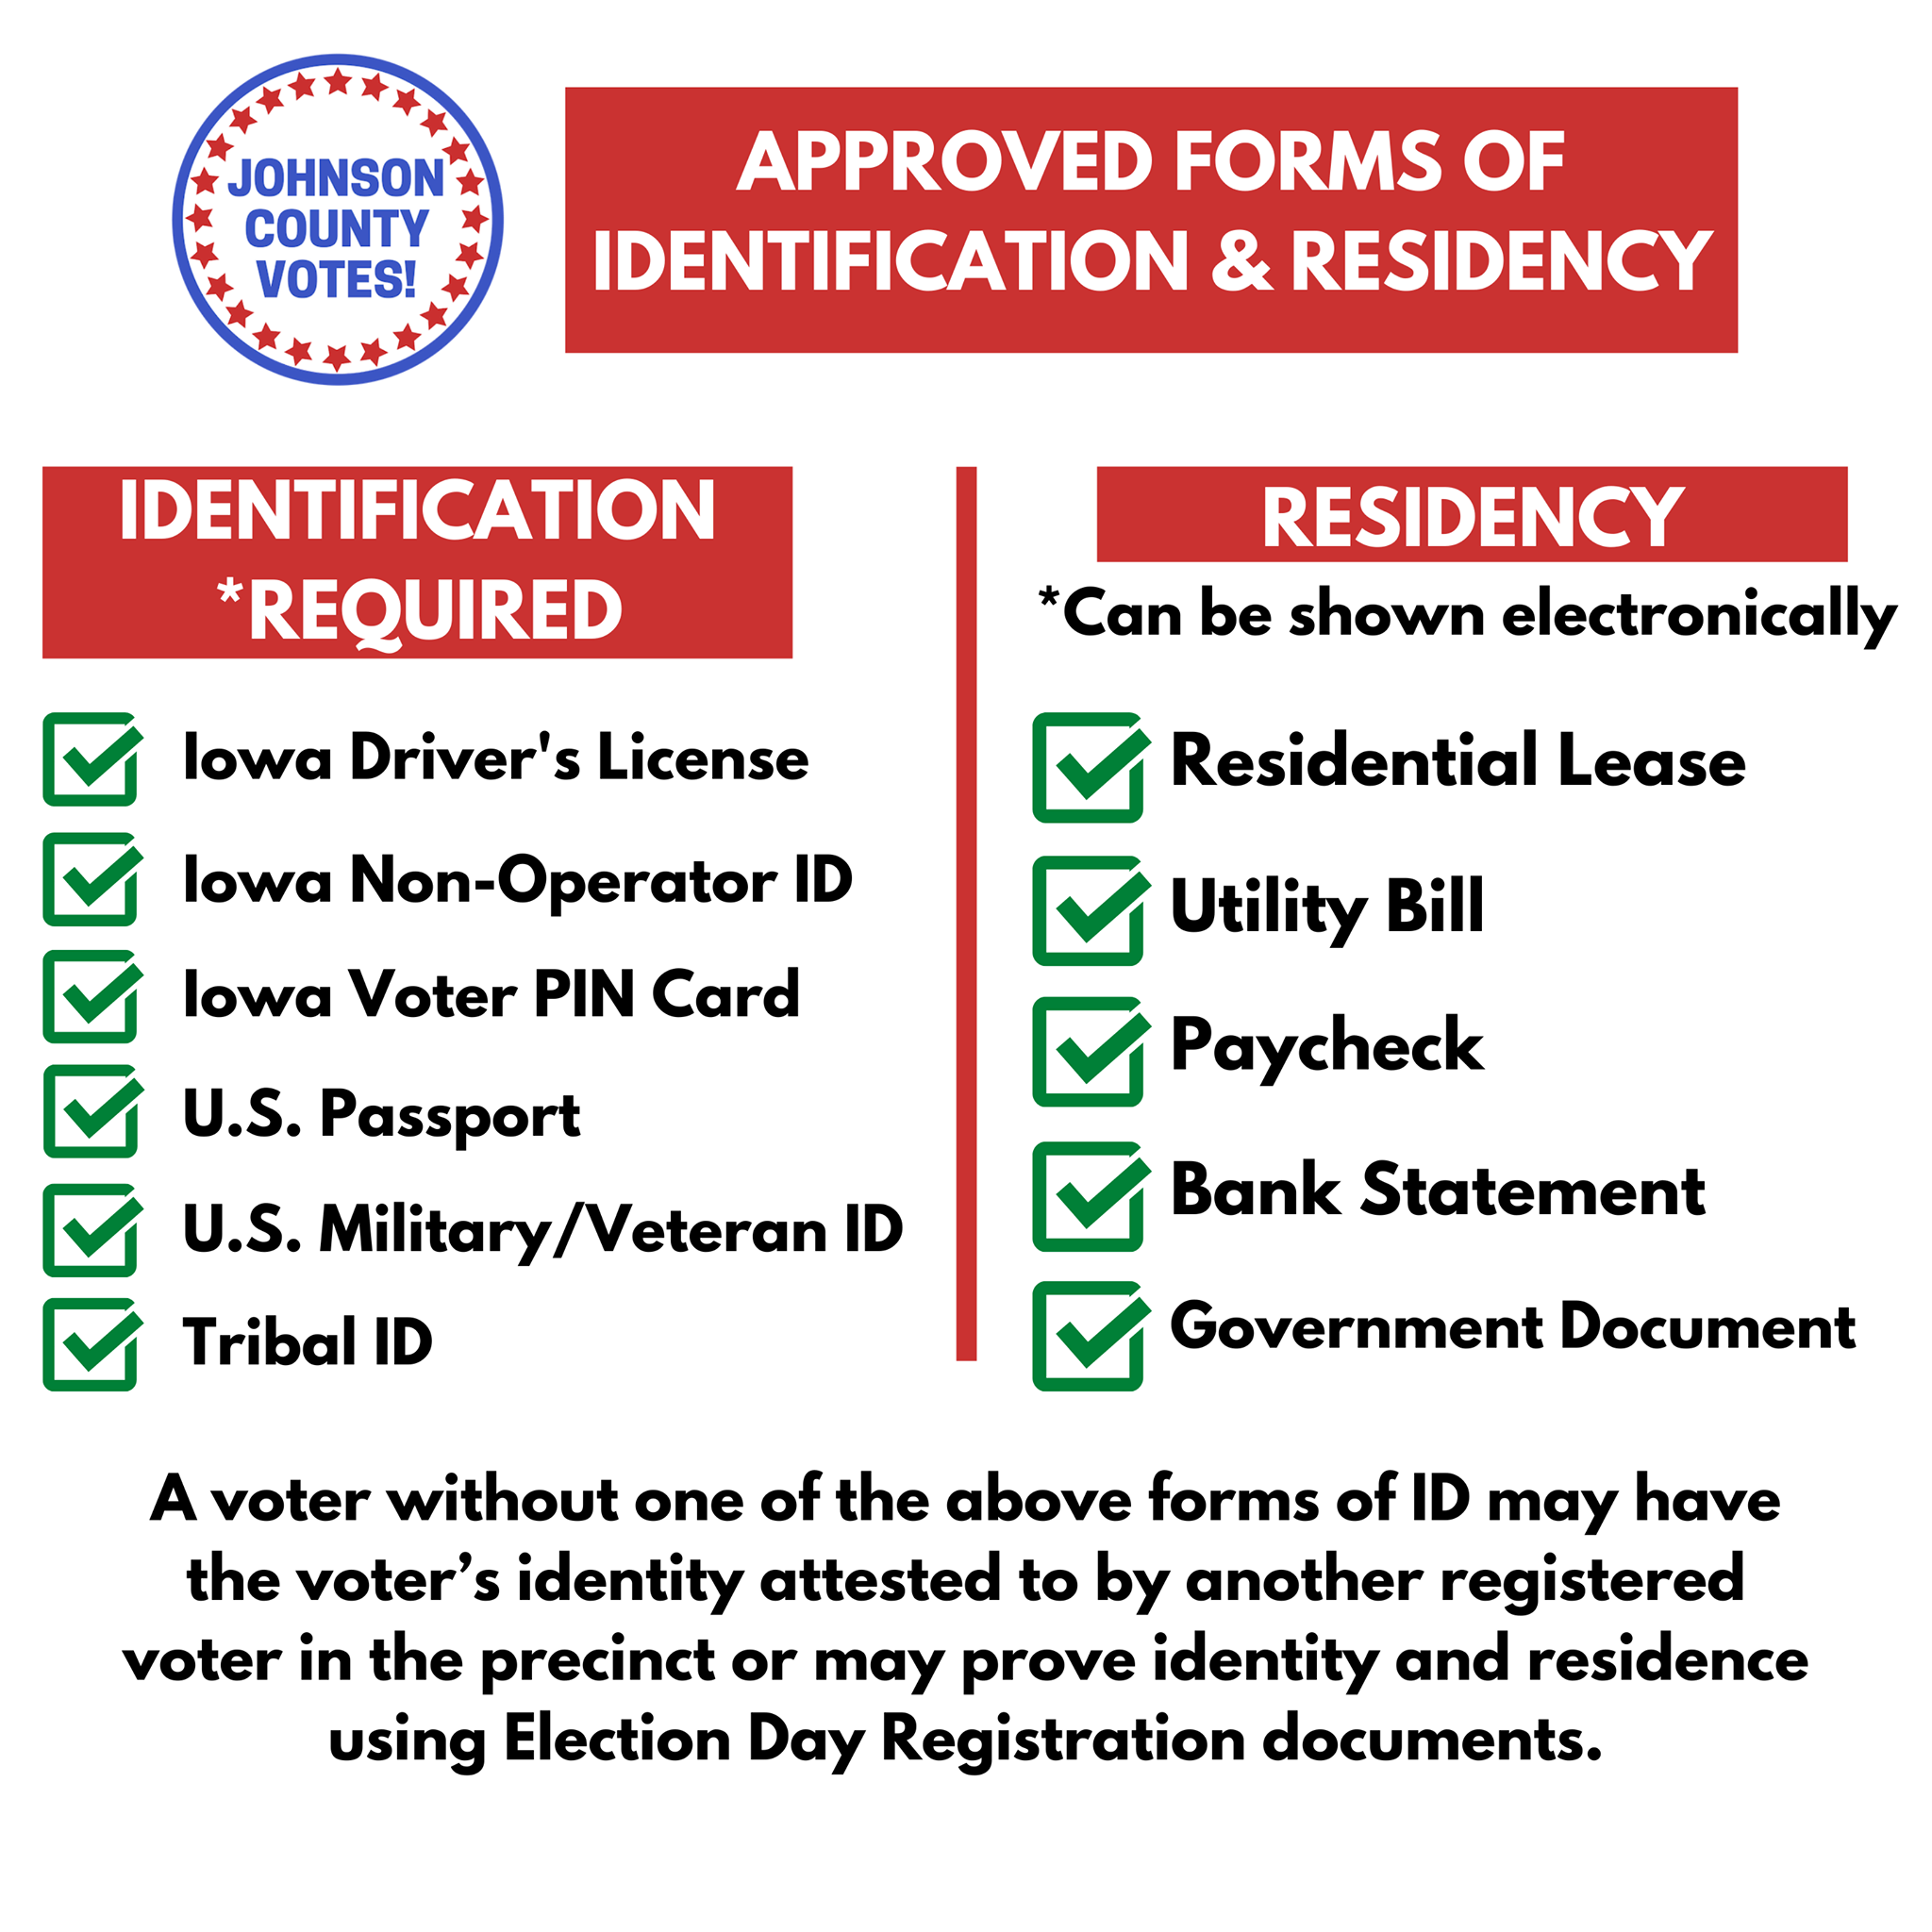 List of approved forms of ID and residency from Johnson County Auditor's office